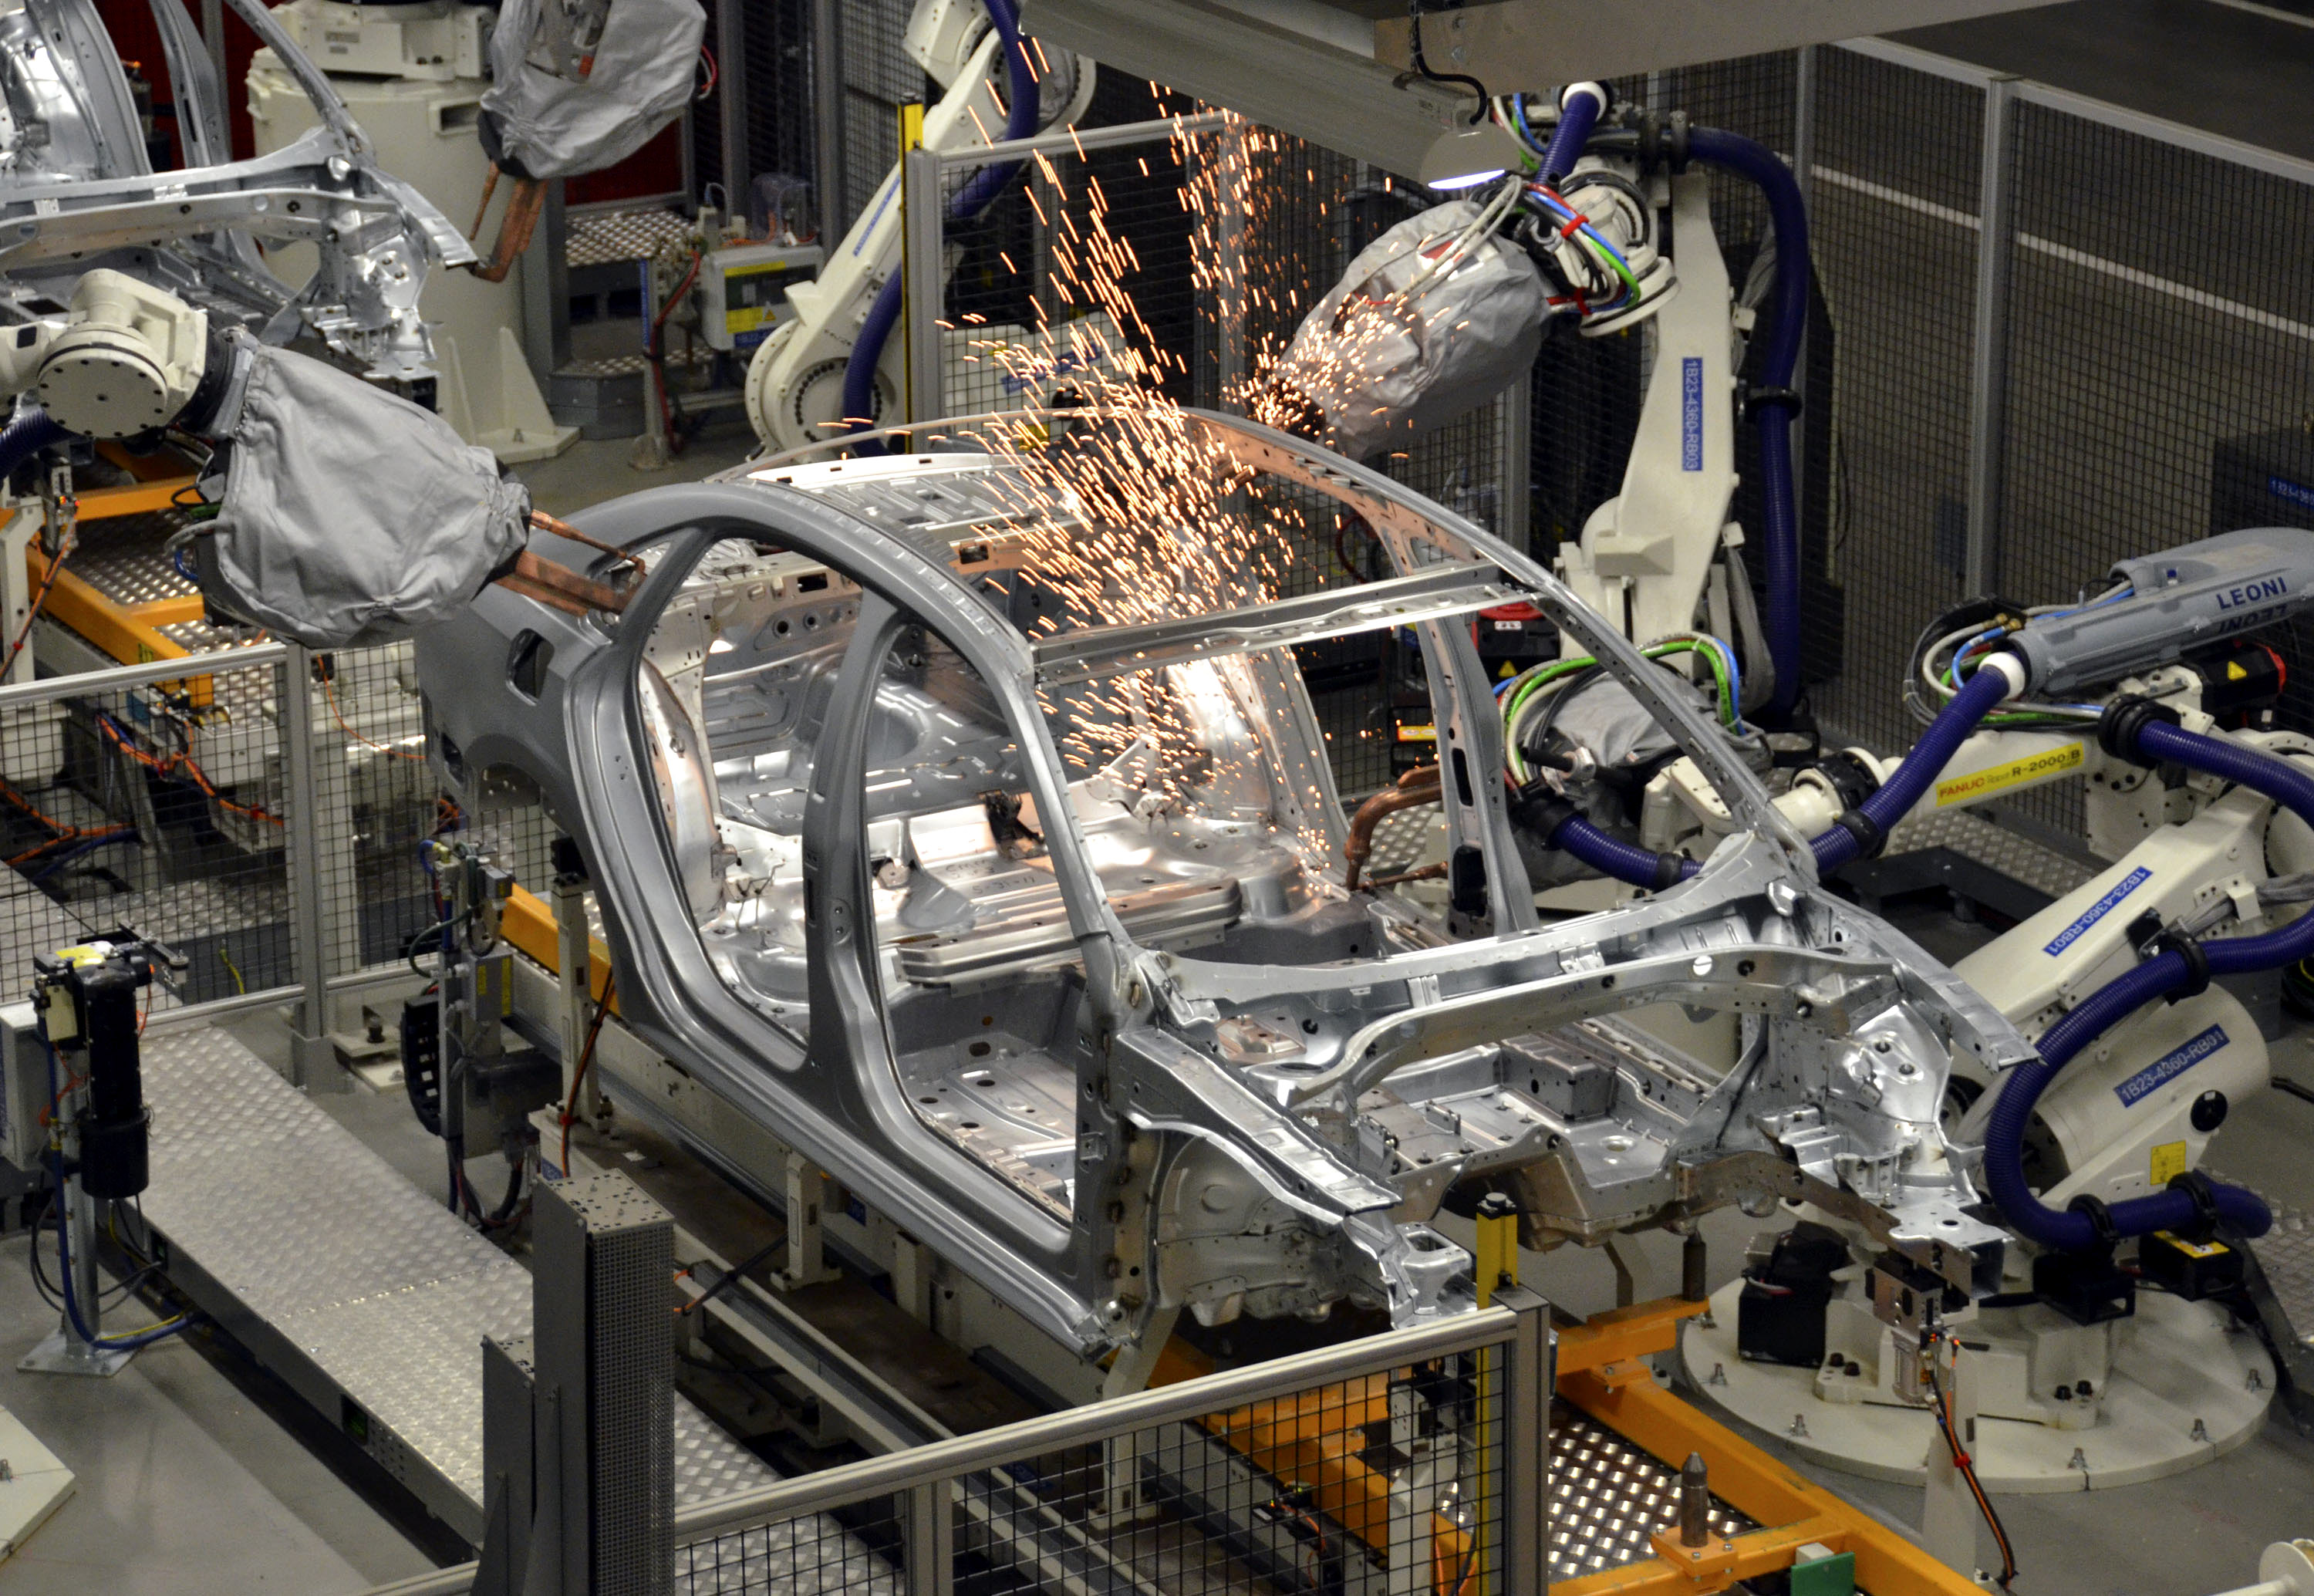 Robots at the Volkswagen Chattanooga plant weld a 2012 VW Passat in the body shop at the plant near Chattanooga, Tennessee, U.S., on Wednesday, June 1, 2011. The plant which has an initial capacity of 125,000 units per year, will build the 2012 Volkswagen Passat for the U.S., Mexico and Canada. Photographer: Mark Elias/Bloomberg